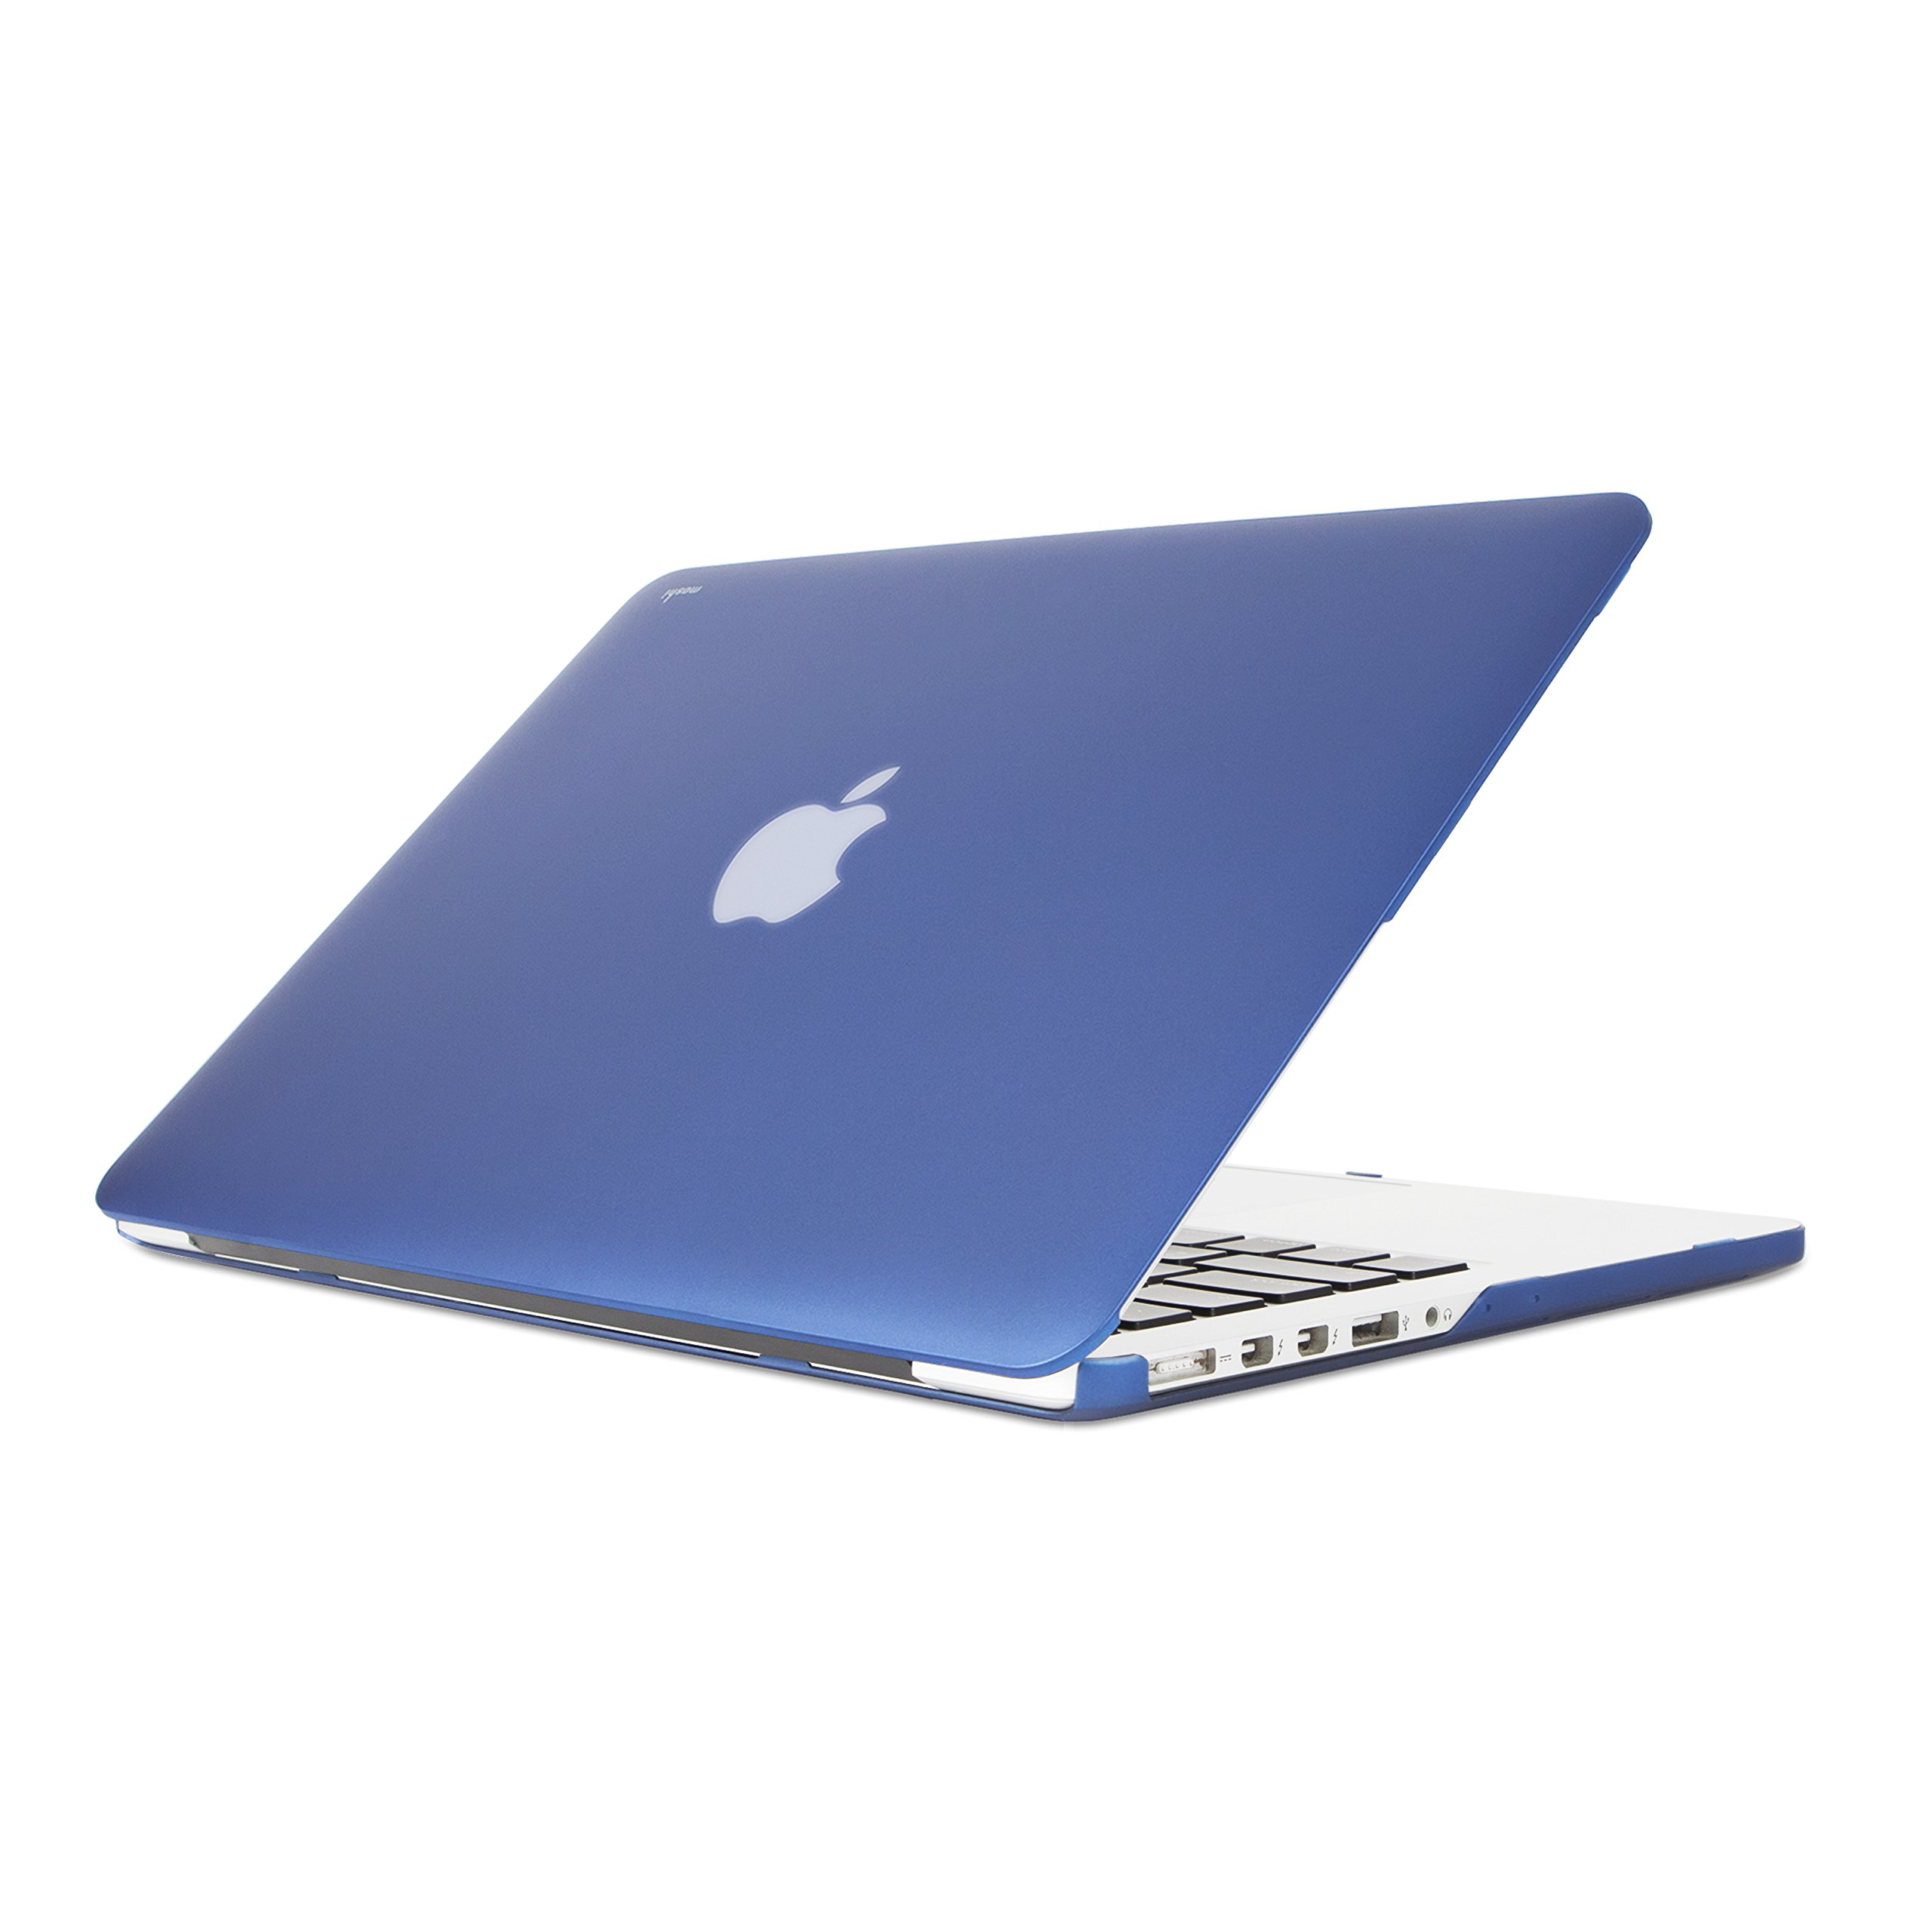 Moshi iGlaze Hard Case for MacBook Pro Retina 13'' (2012-2015) (Indigo Blue) by Moshi (Image #1)